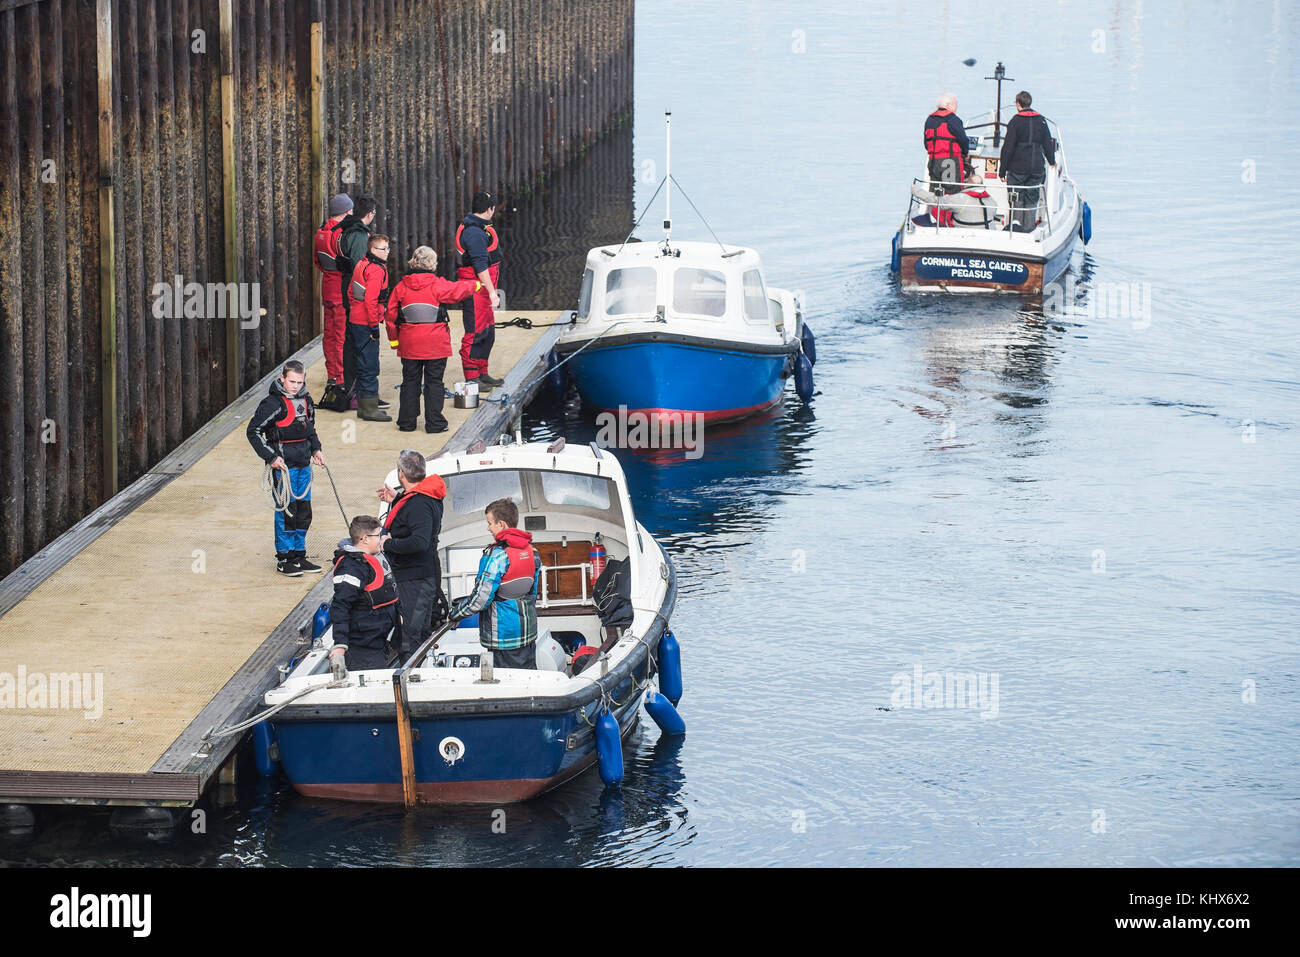 Cornwall Sea Cadets boarding small motor boats in preparation for a training exercise Falmouth Cornwall UK - Stock Image